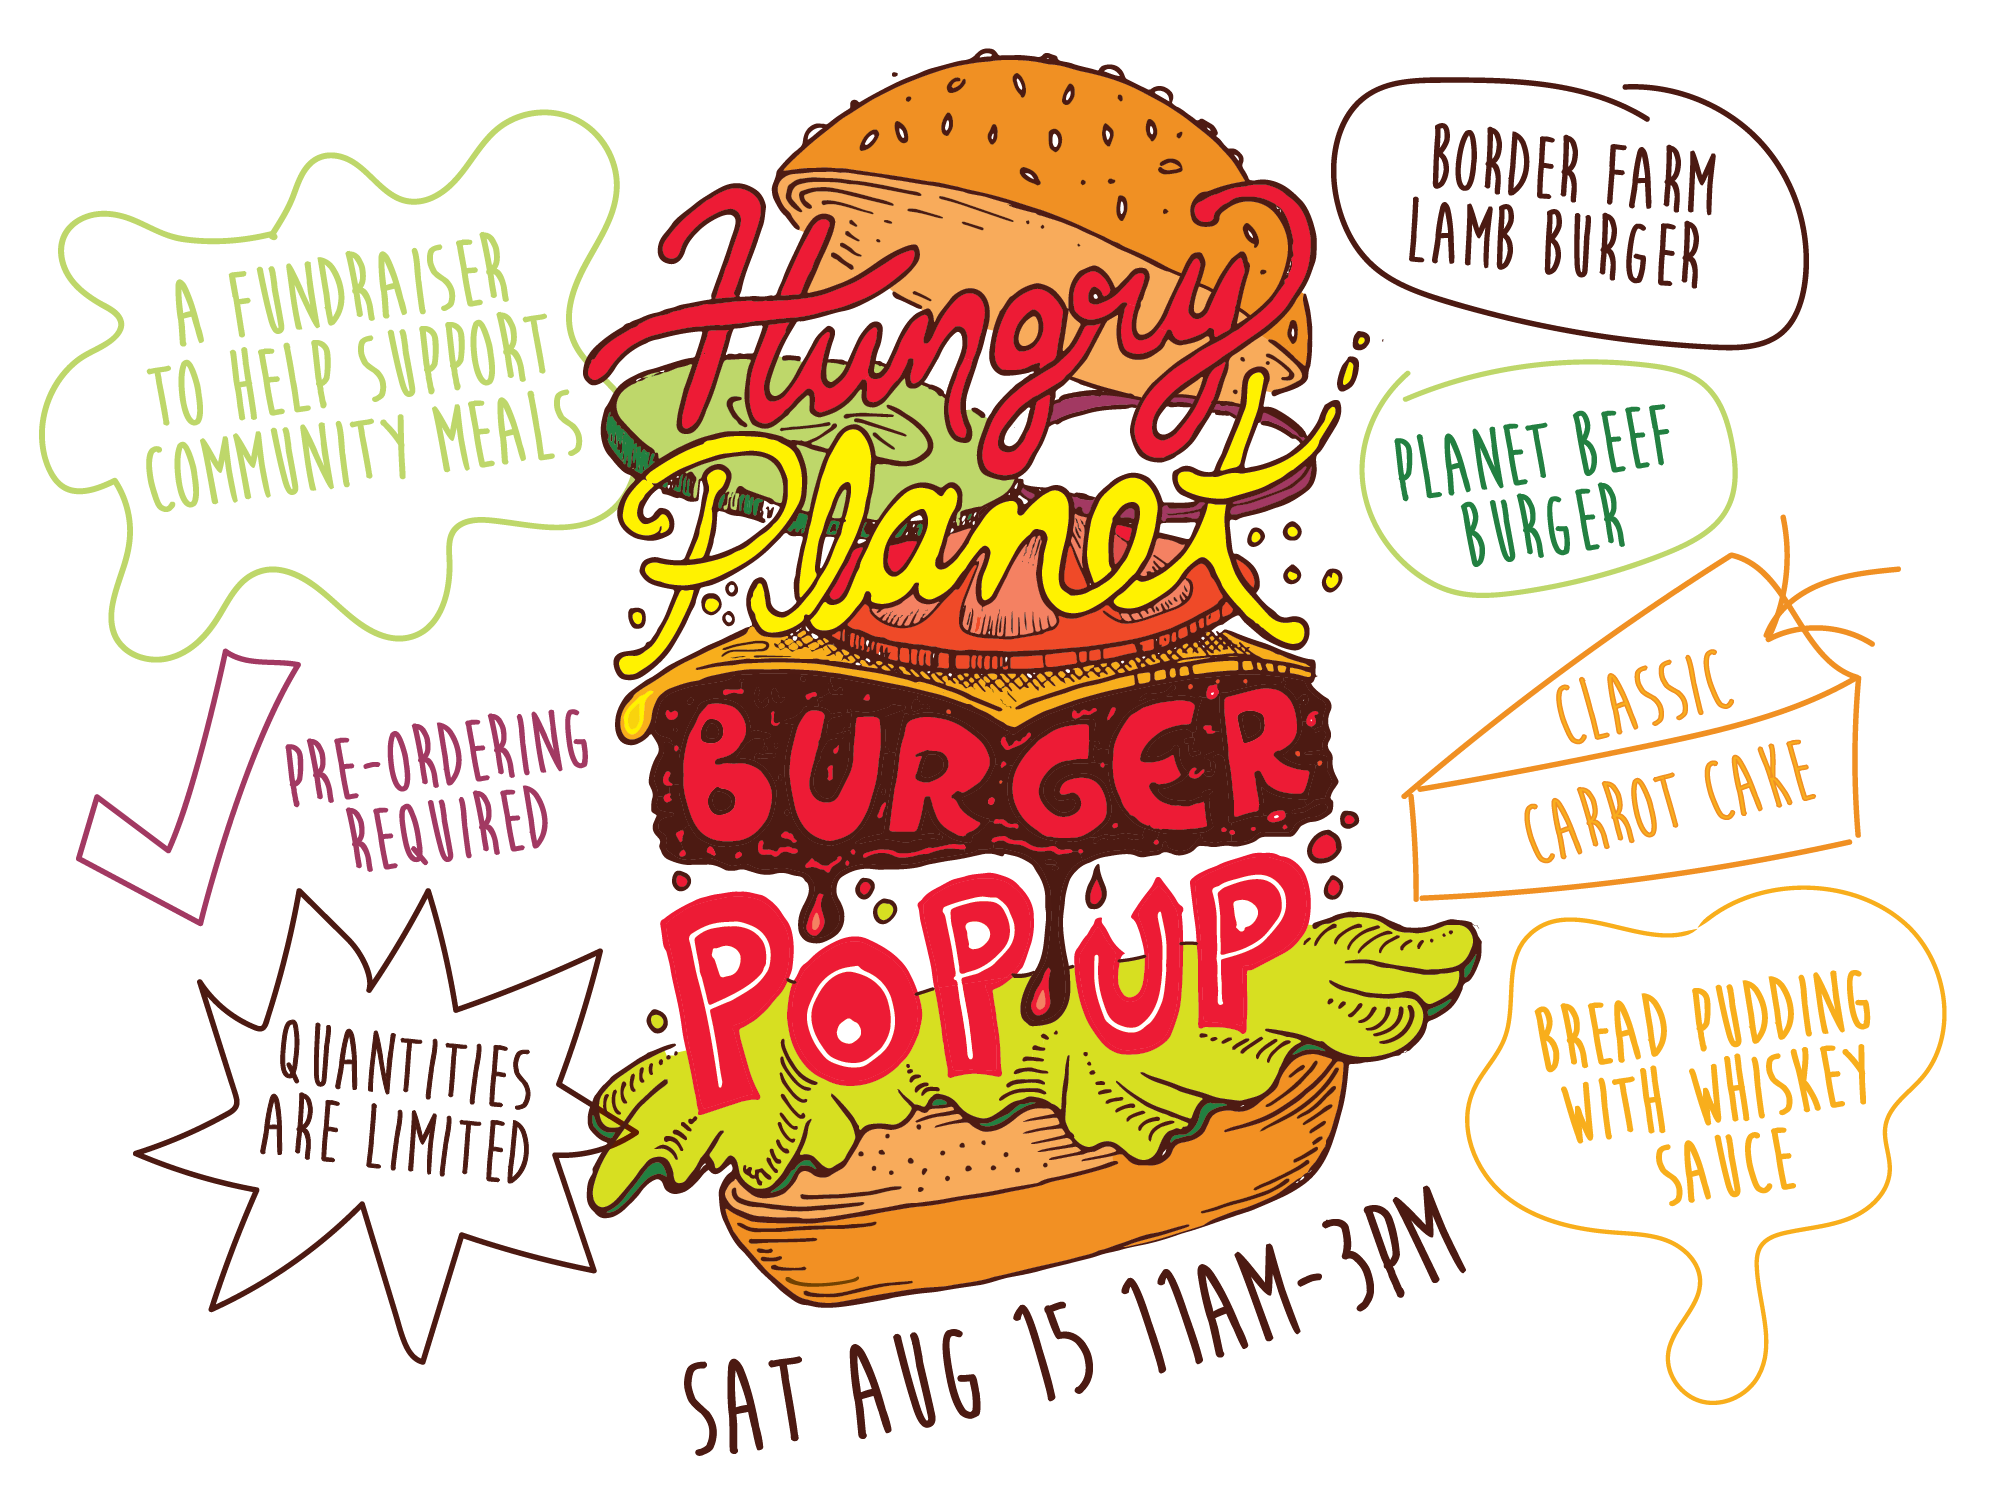 Burger Pop Up fundraiser for community meals August 15th